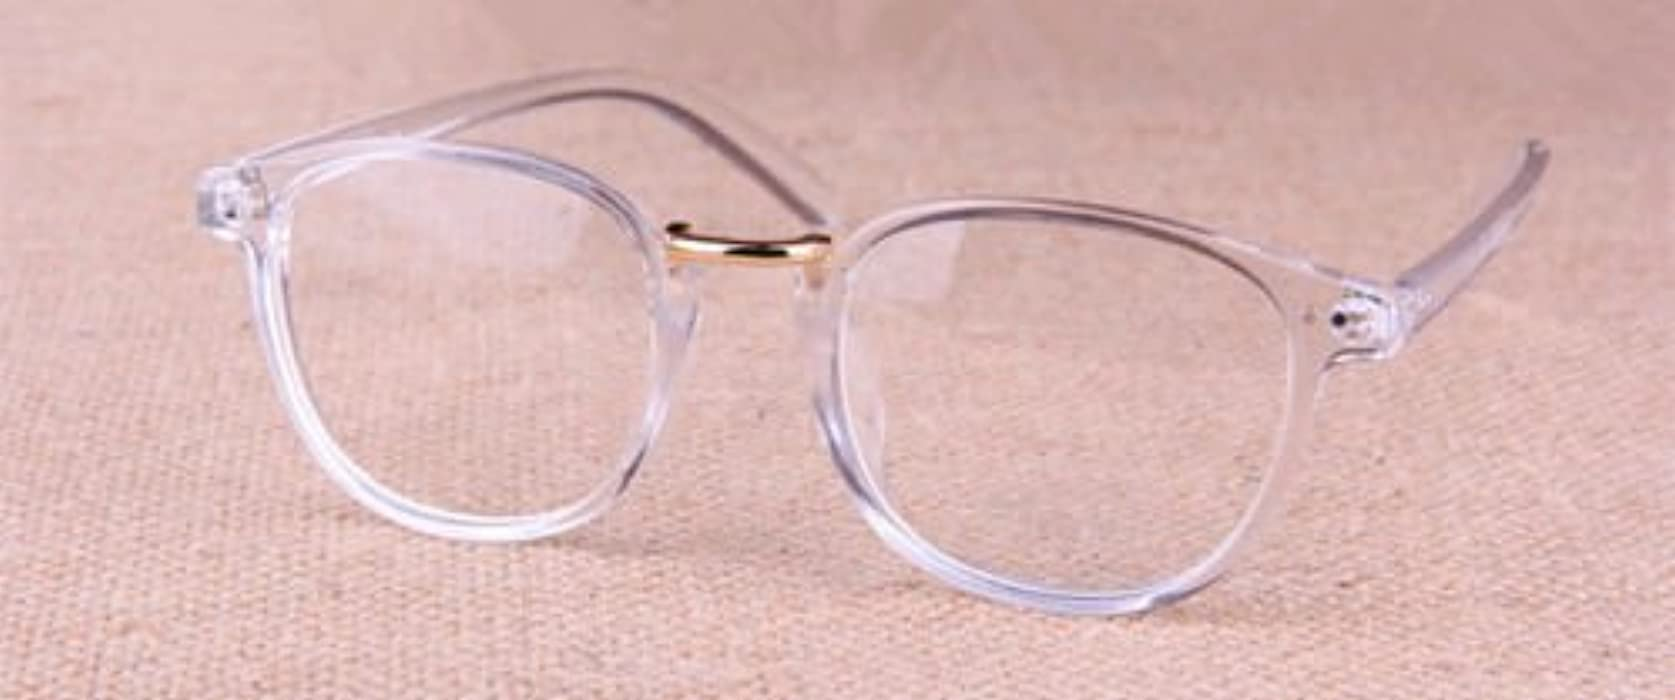 Hot Sale Transparent Silver Eyeglass Frame Clear Glasses Full Rim Retro Eyewear Men's Eyewear Frames